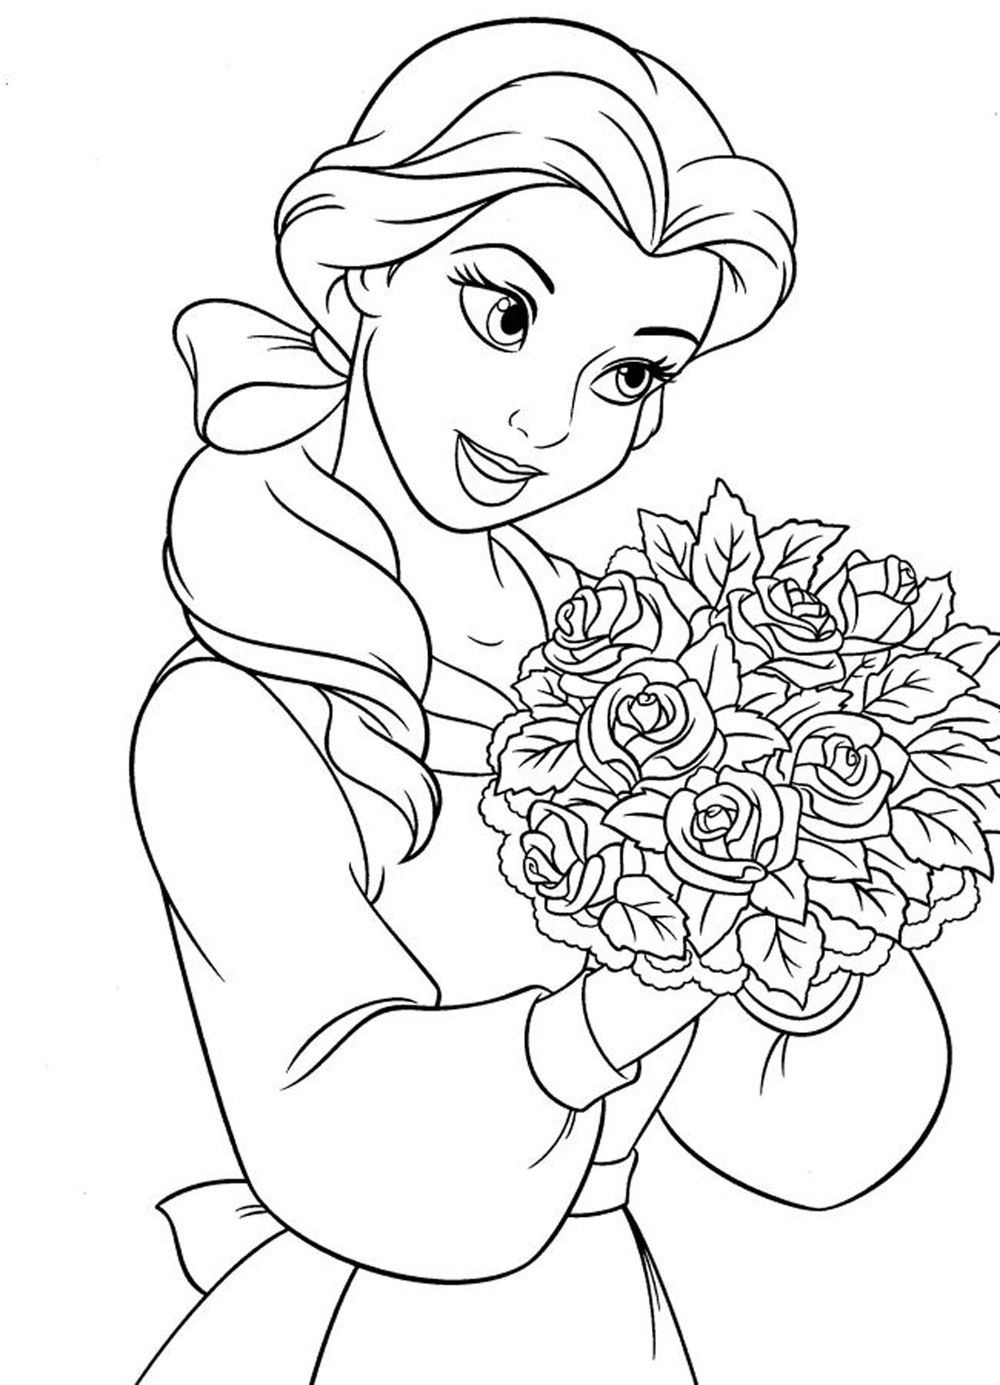 coloring pages for kids girls print download coloring pages for girls recommend a pages for kids coloring girls